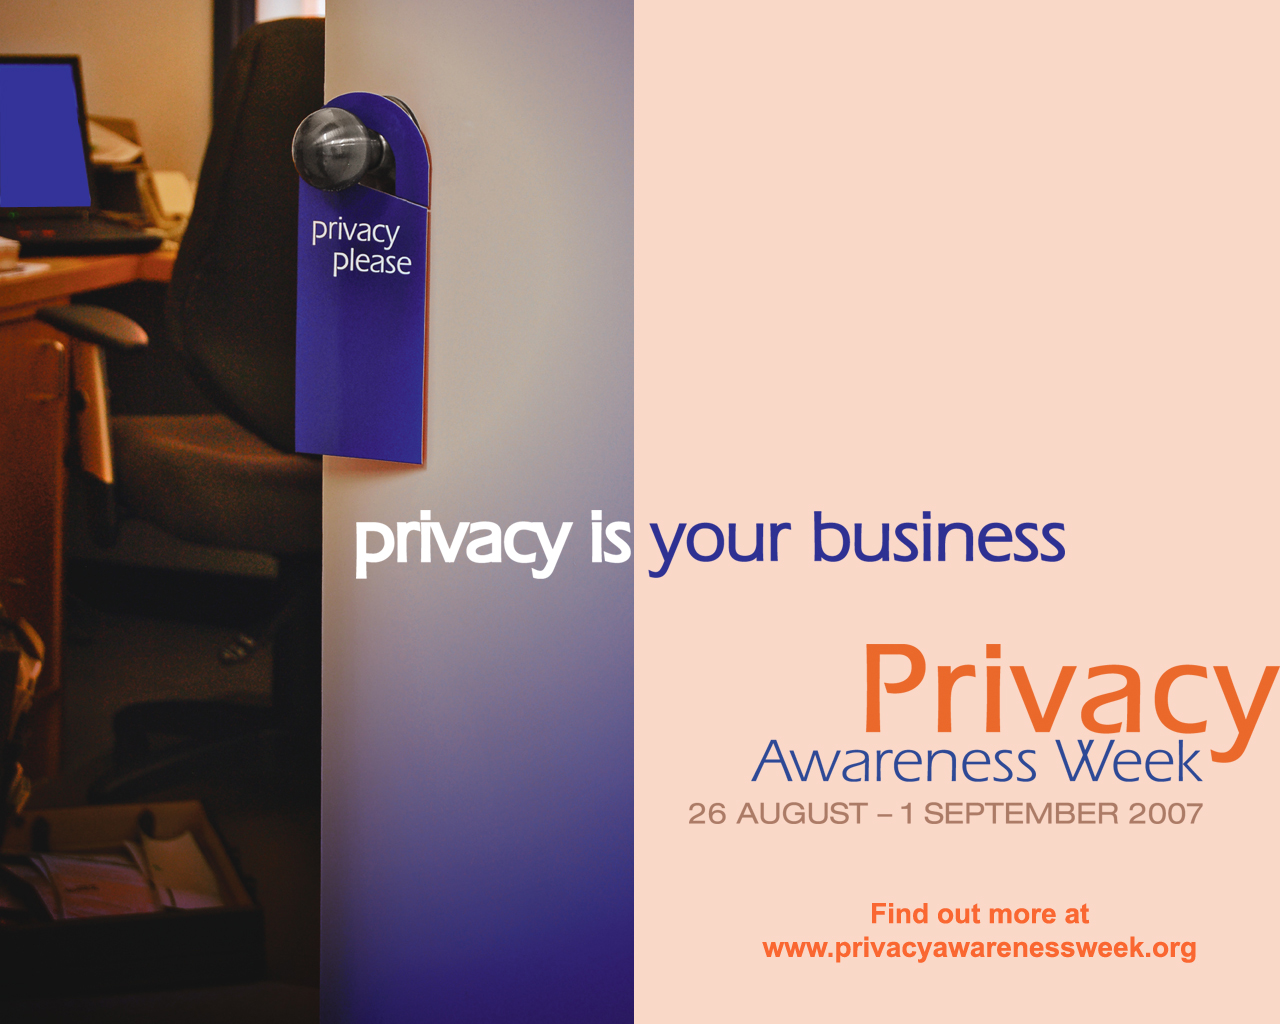 privacy_is_your_business